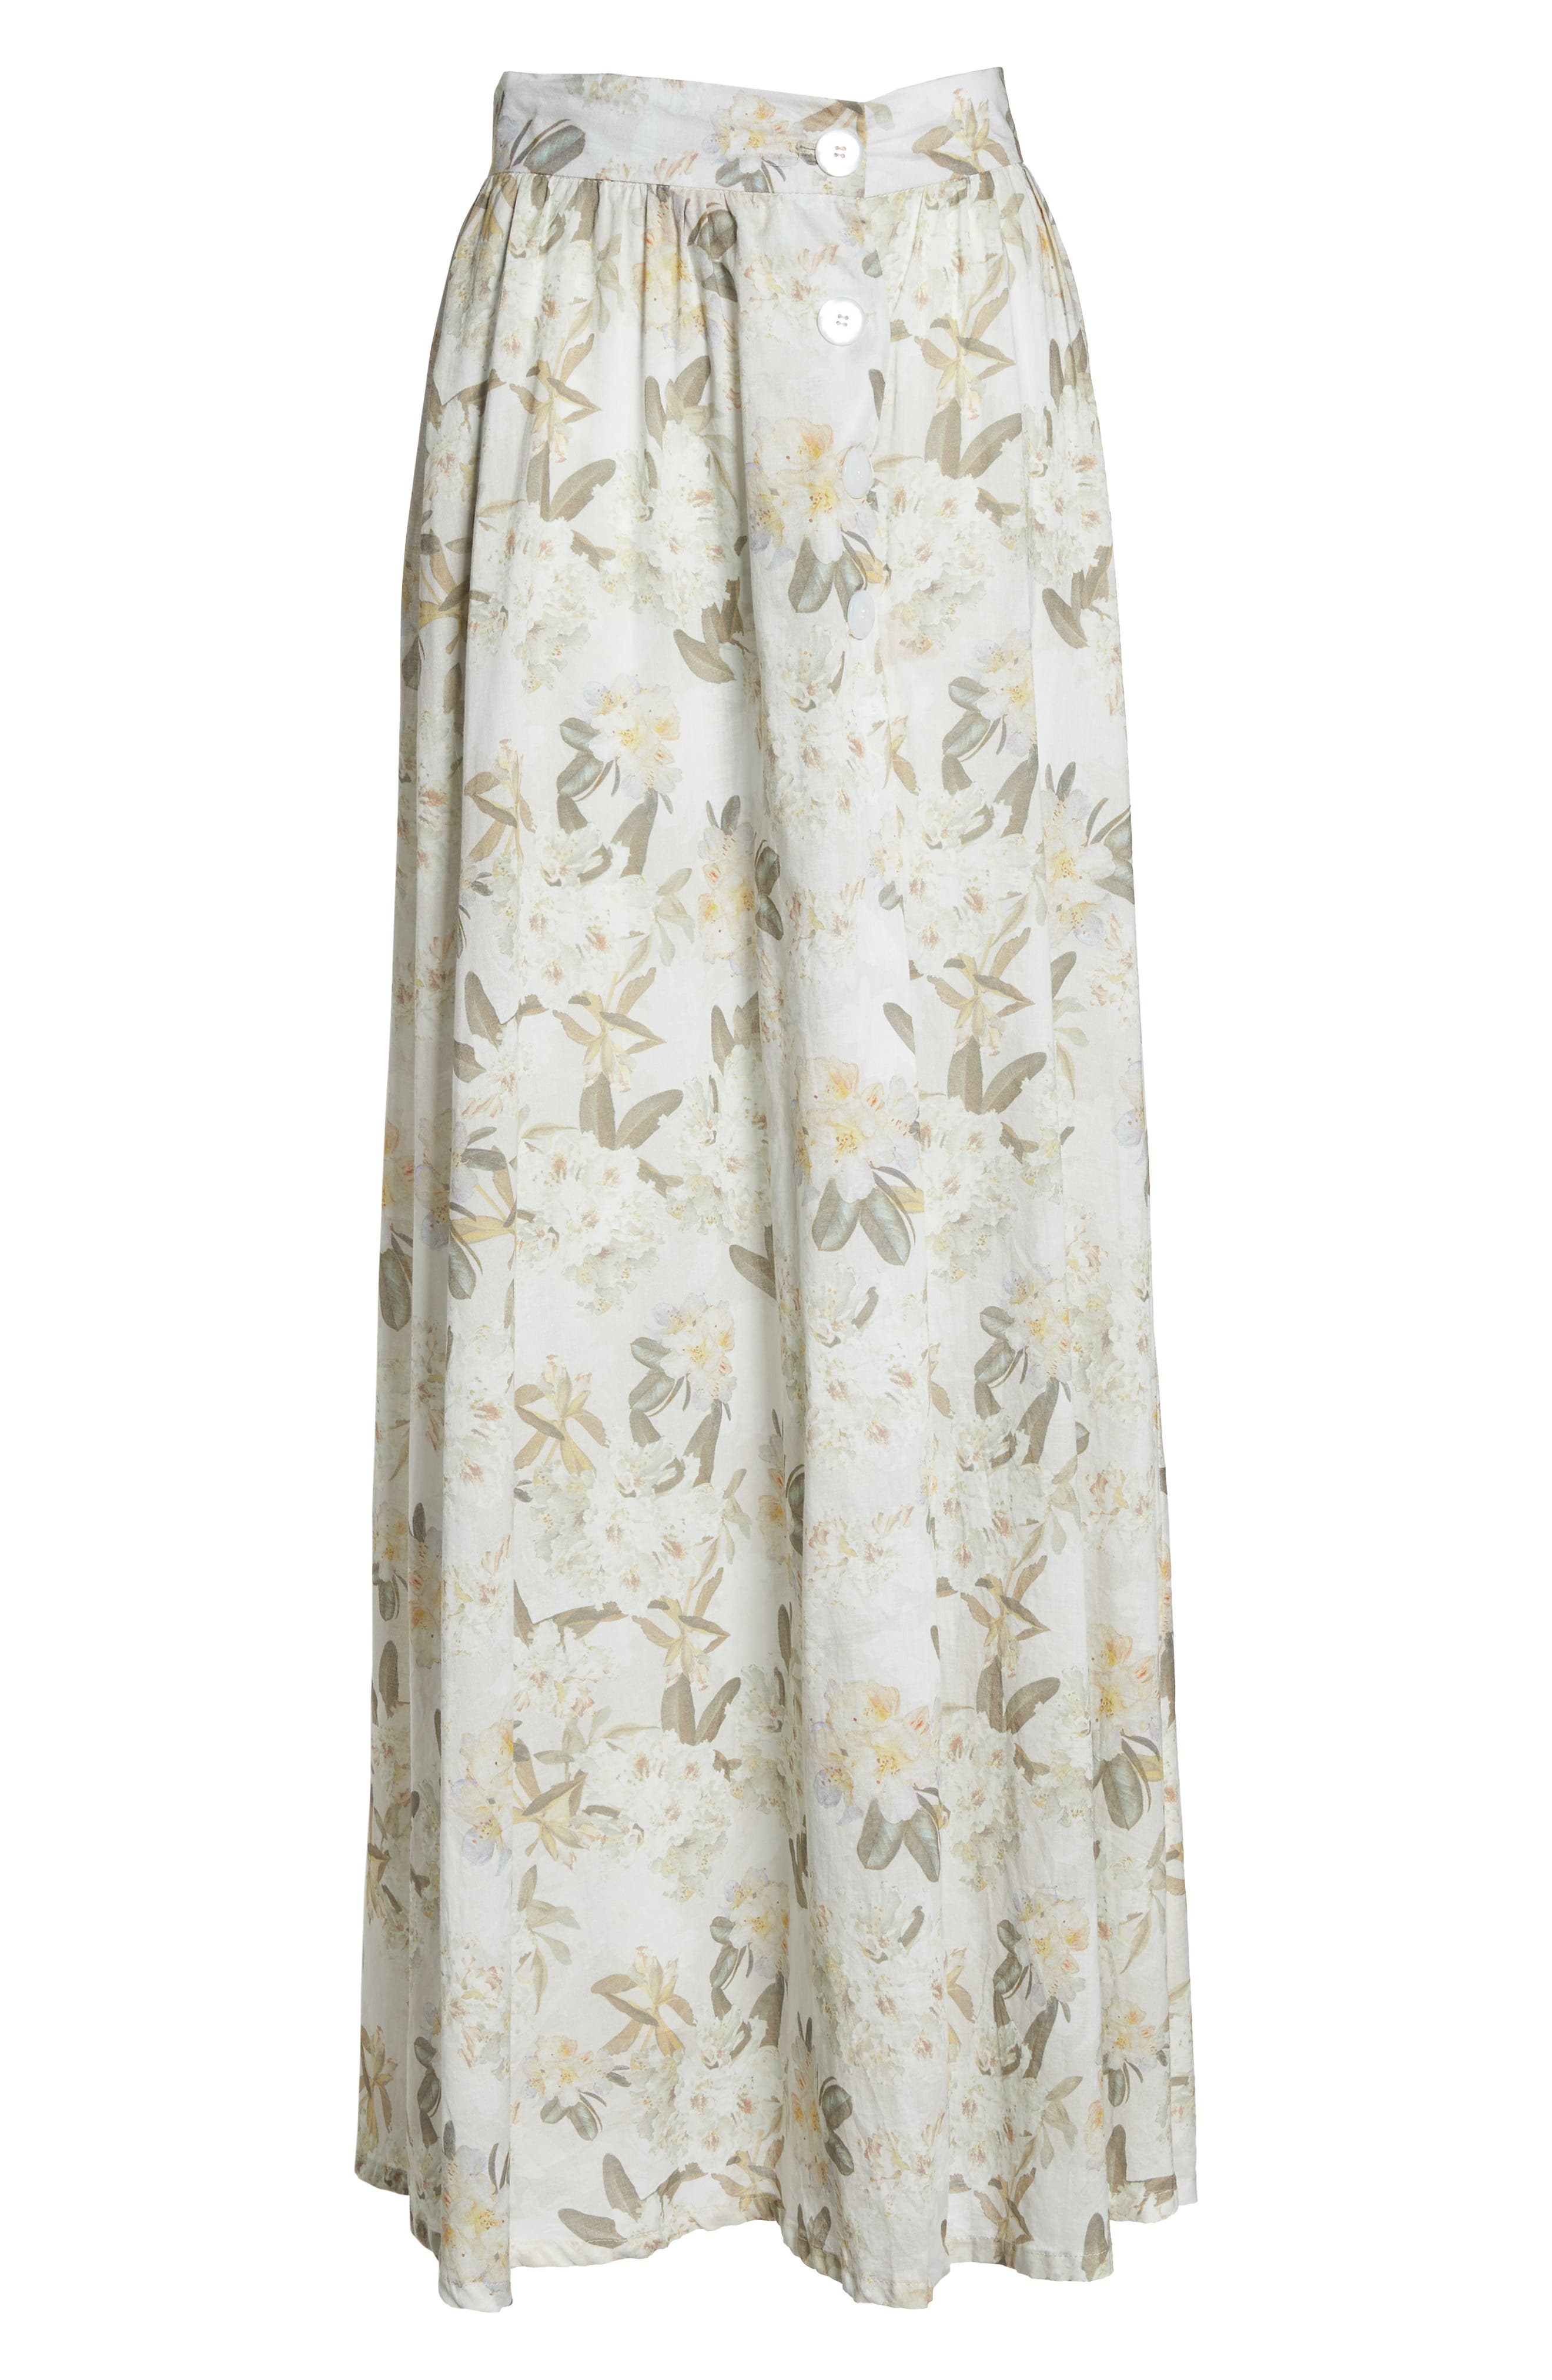 Edith Cover-Up Maxi Skirt,                             Alternate thumbnail 6, color,                             Ete Floral White